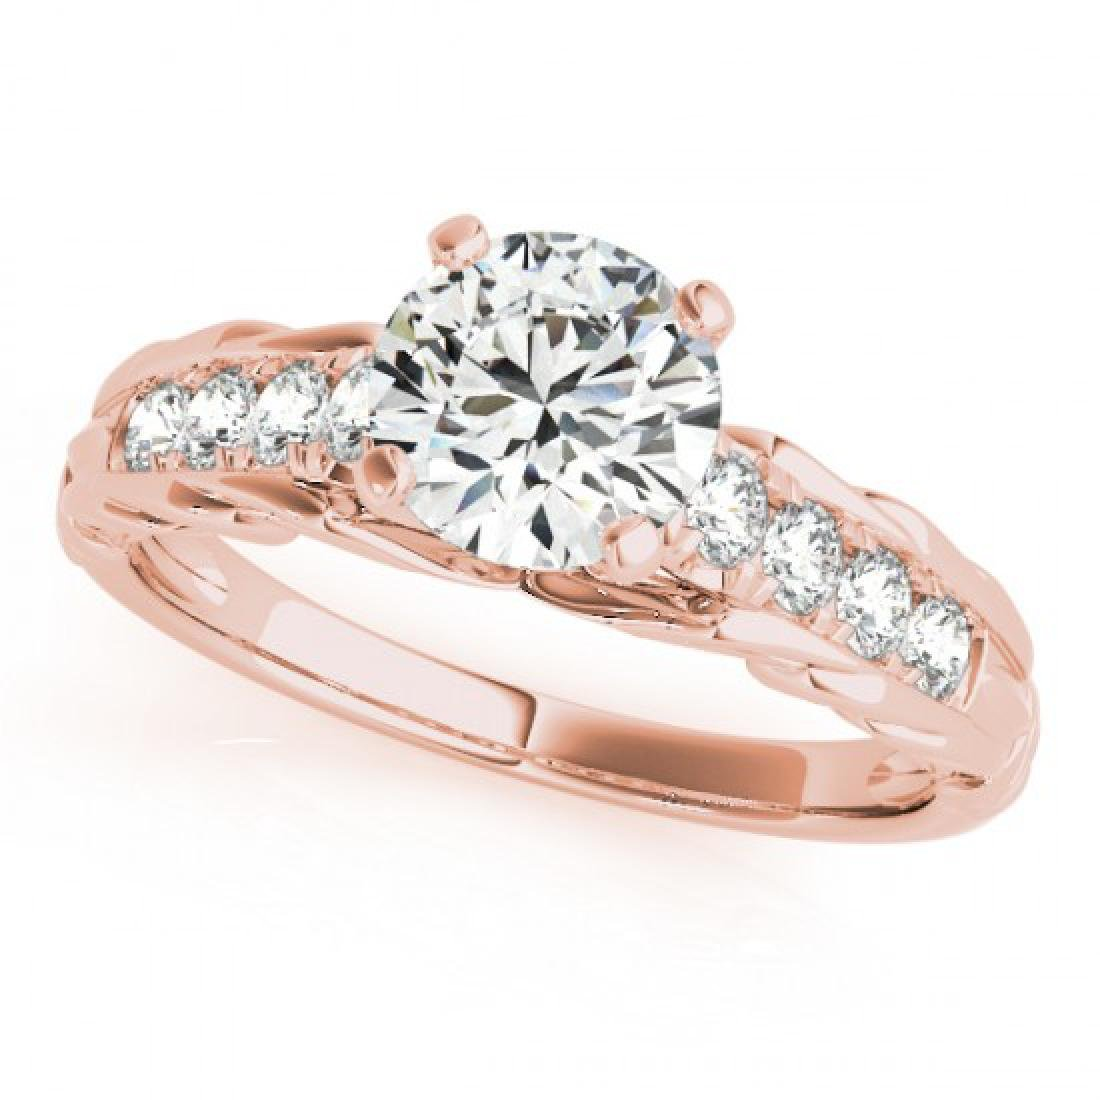 0.7 CTW Certified VS/SI Diamond Solitaire Ring 14K Rose